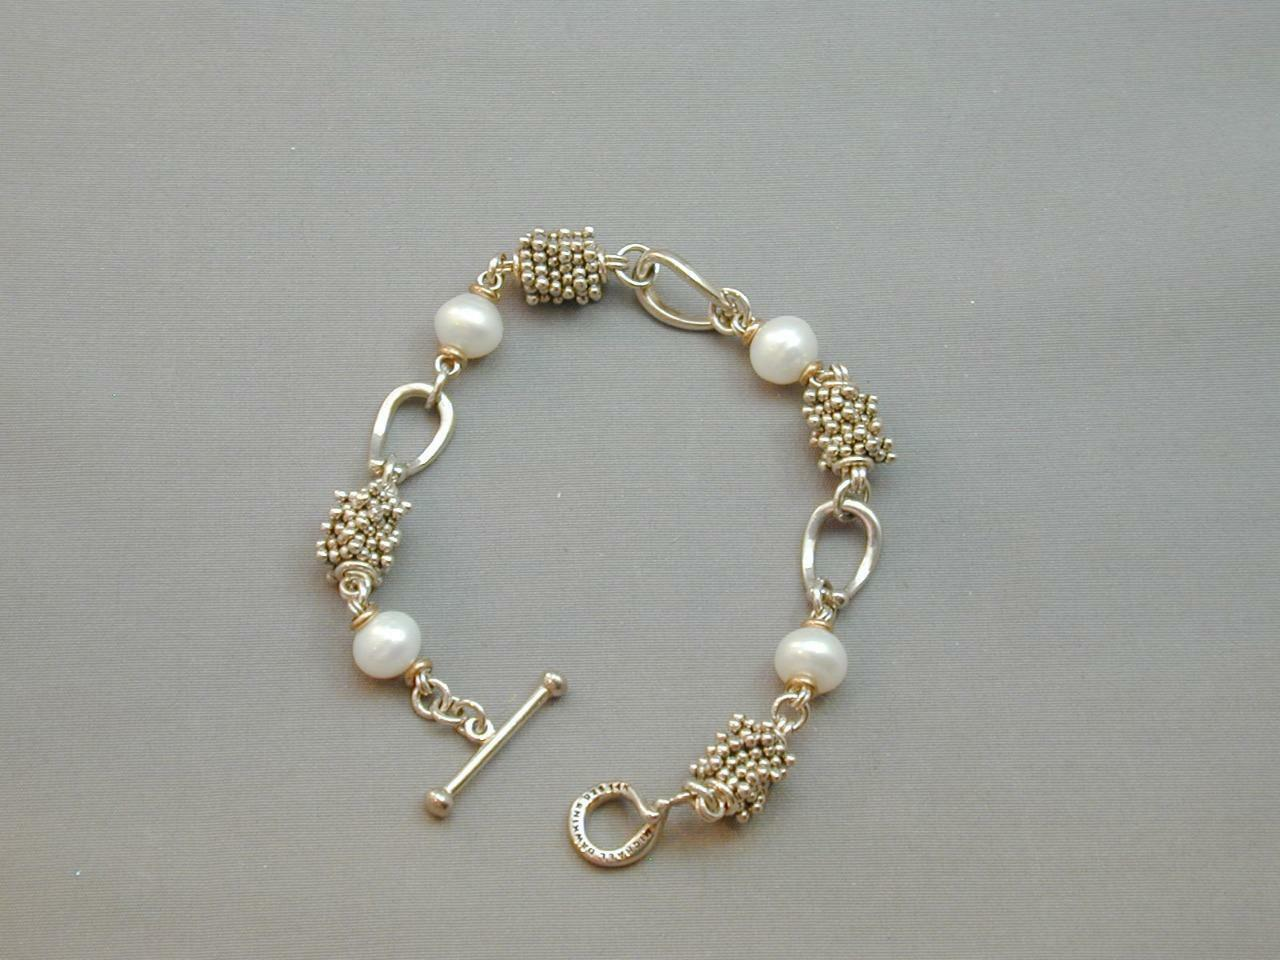 Primary image for Michael Dawkins 14k & Sterling FW Pearl & Granulation Bead Bracelet 7.5""